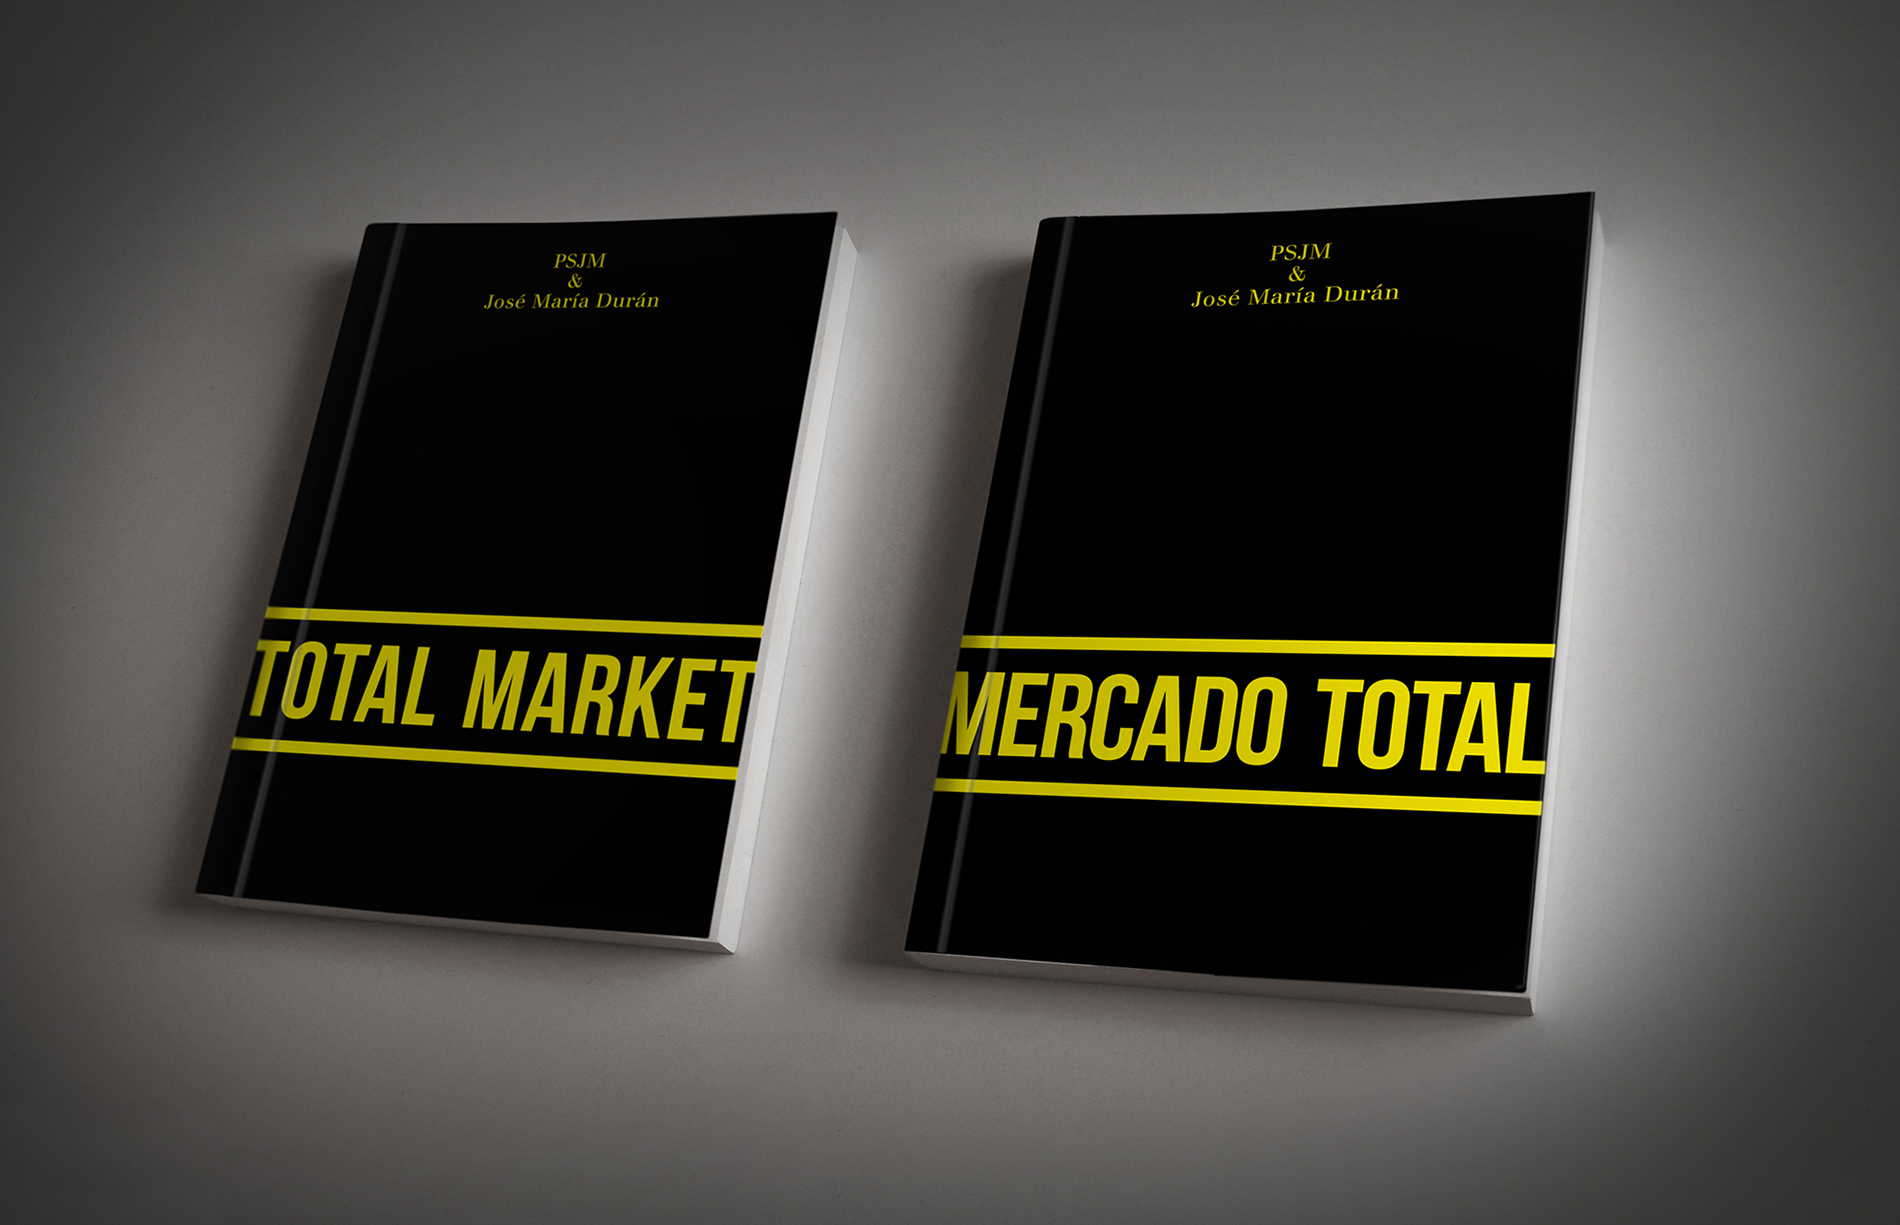 «Mercado Total / Total Market». Alicante: Aural Ediciones, 2015. 216 pages. Bilingual. 17 x 12 cm.